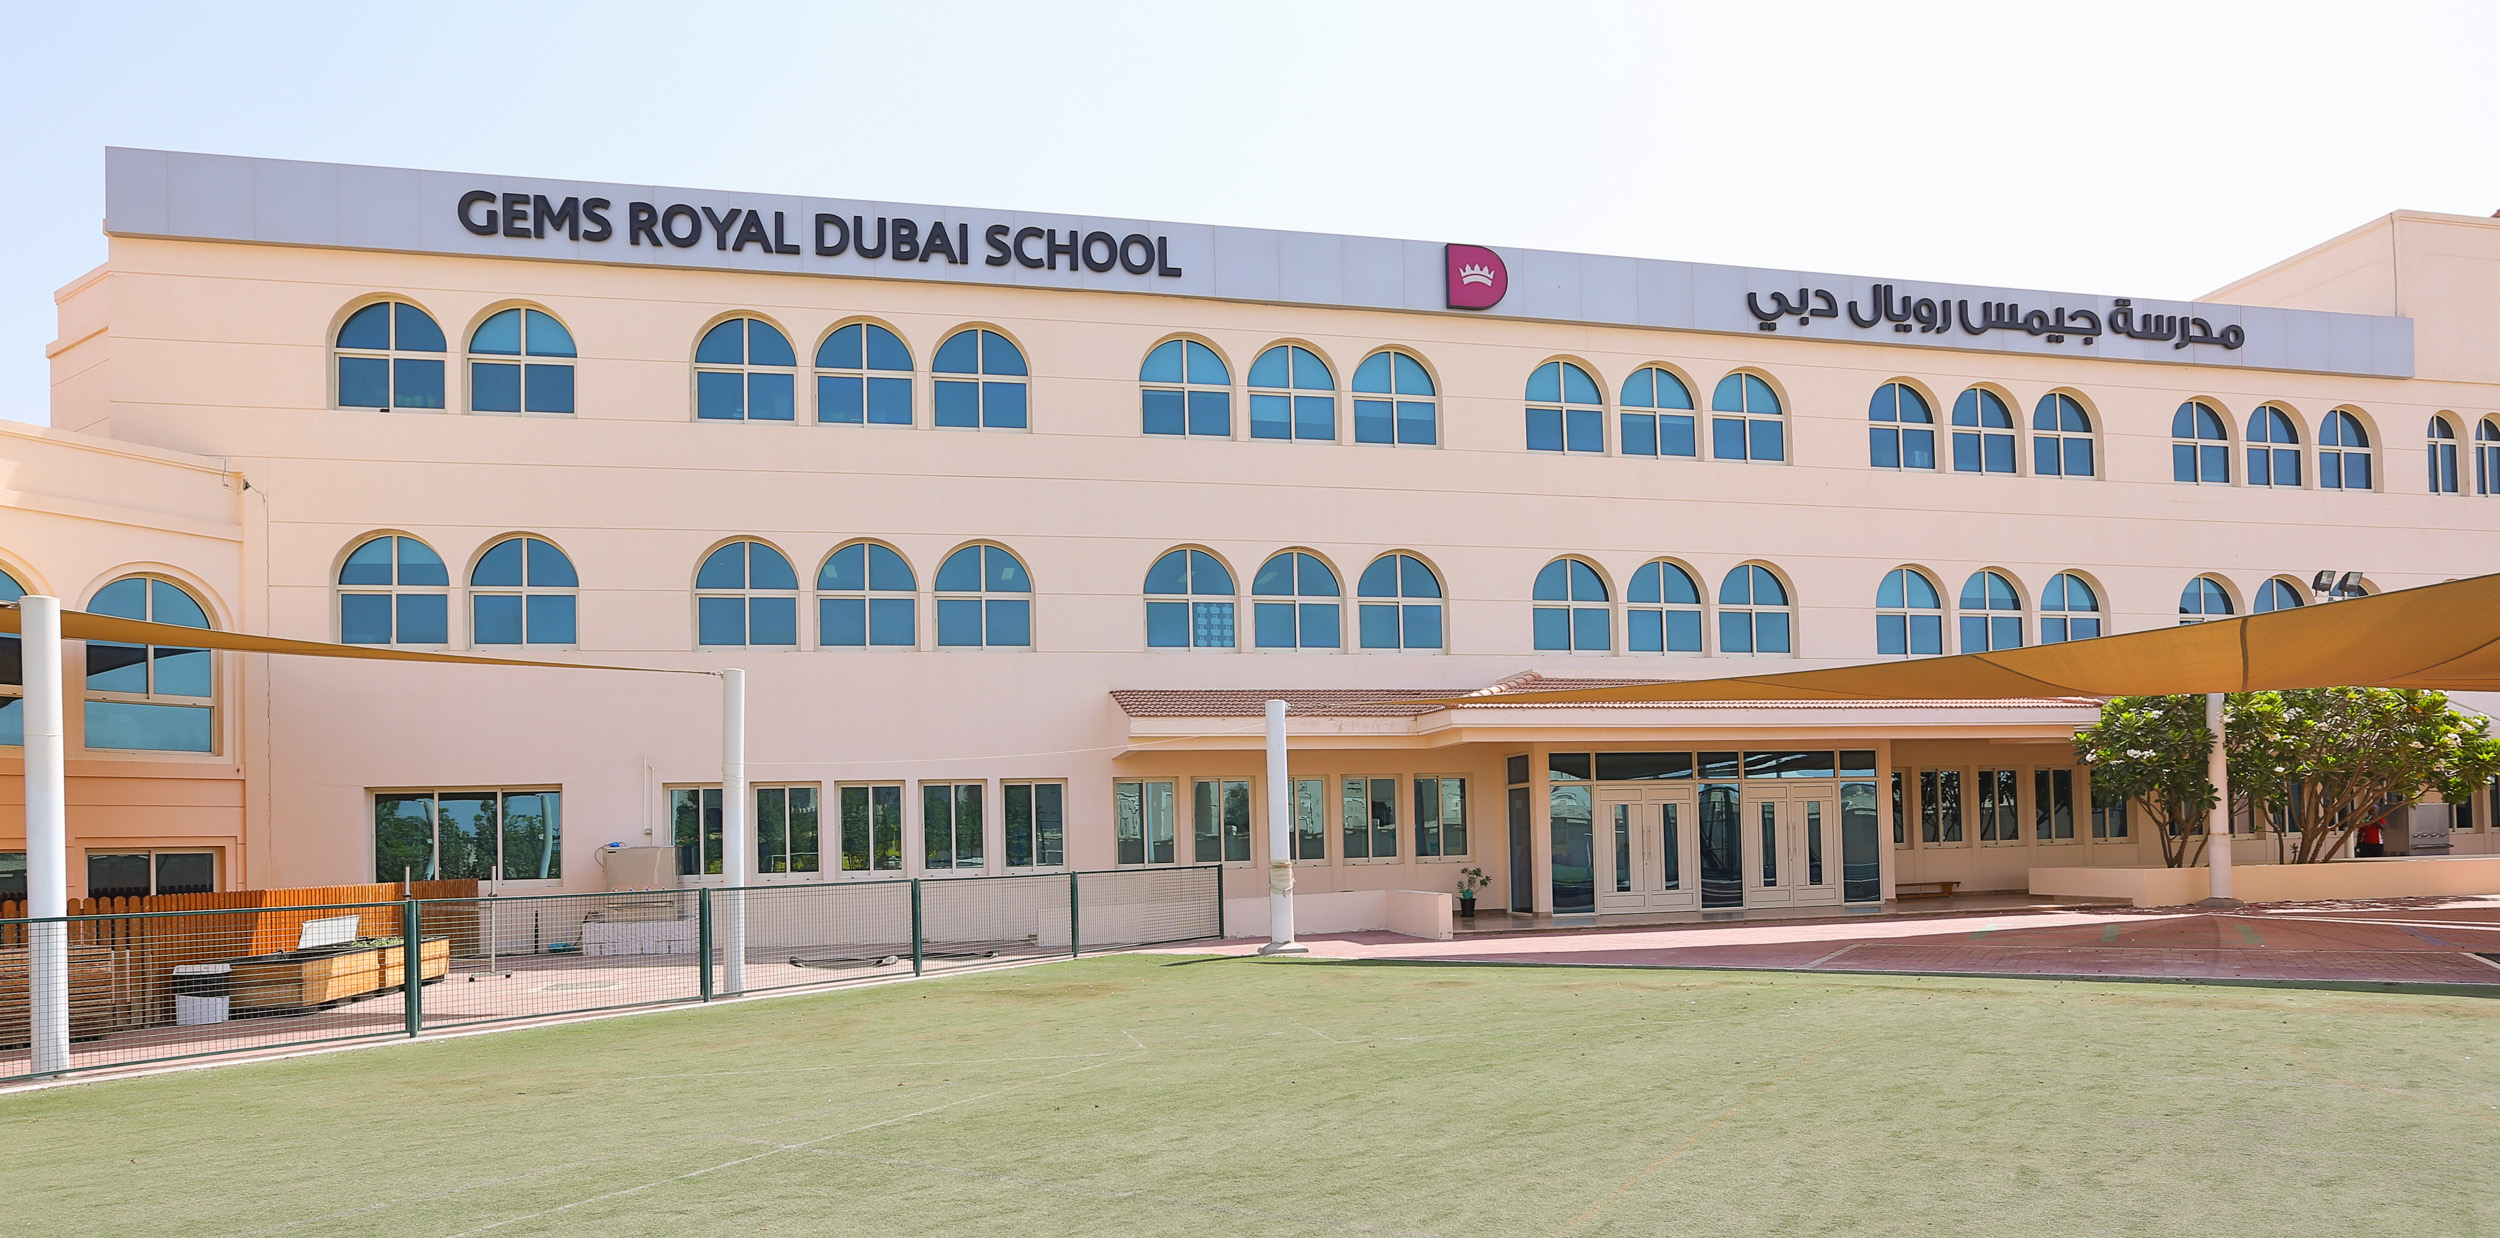 Gems_Royal_Dubai_School